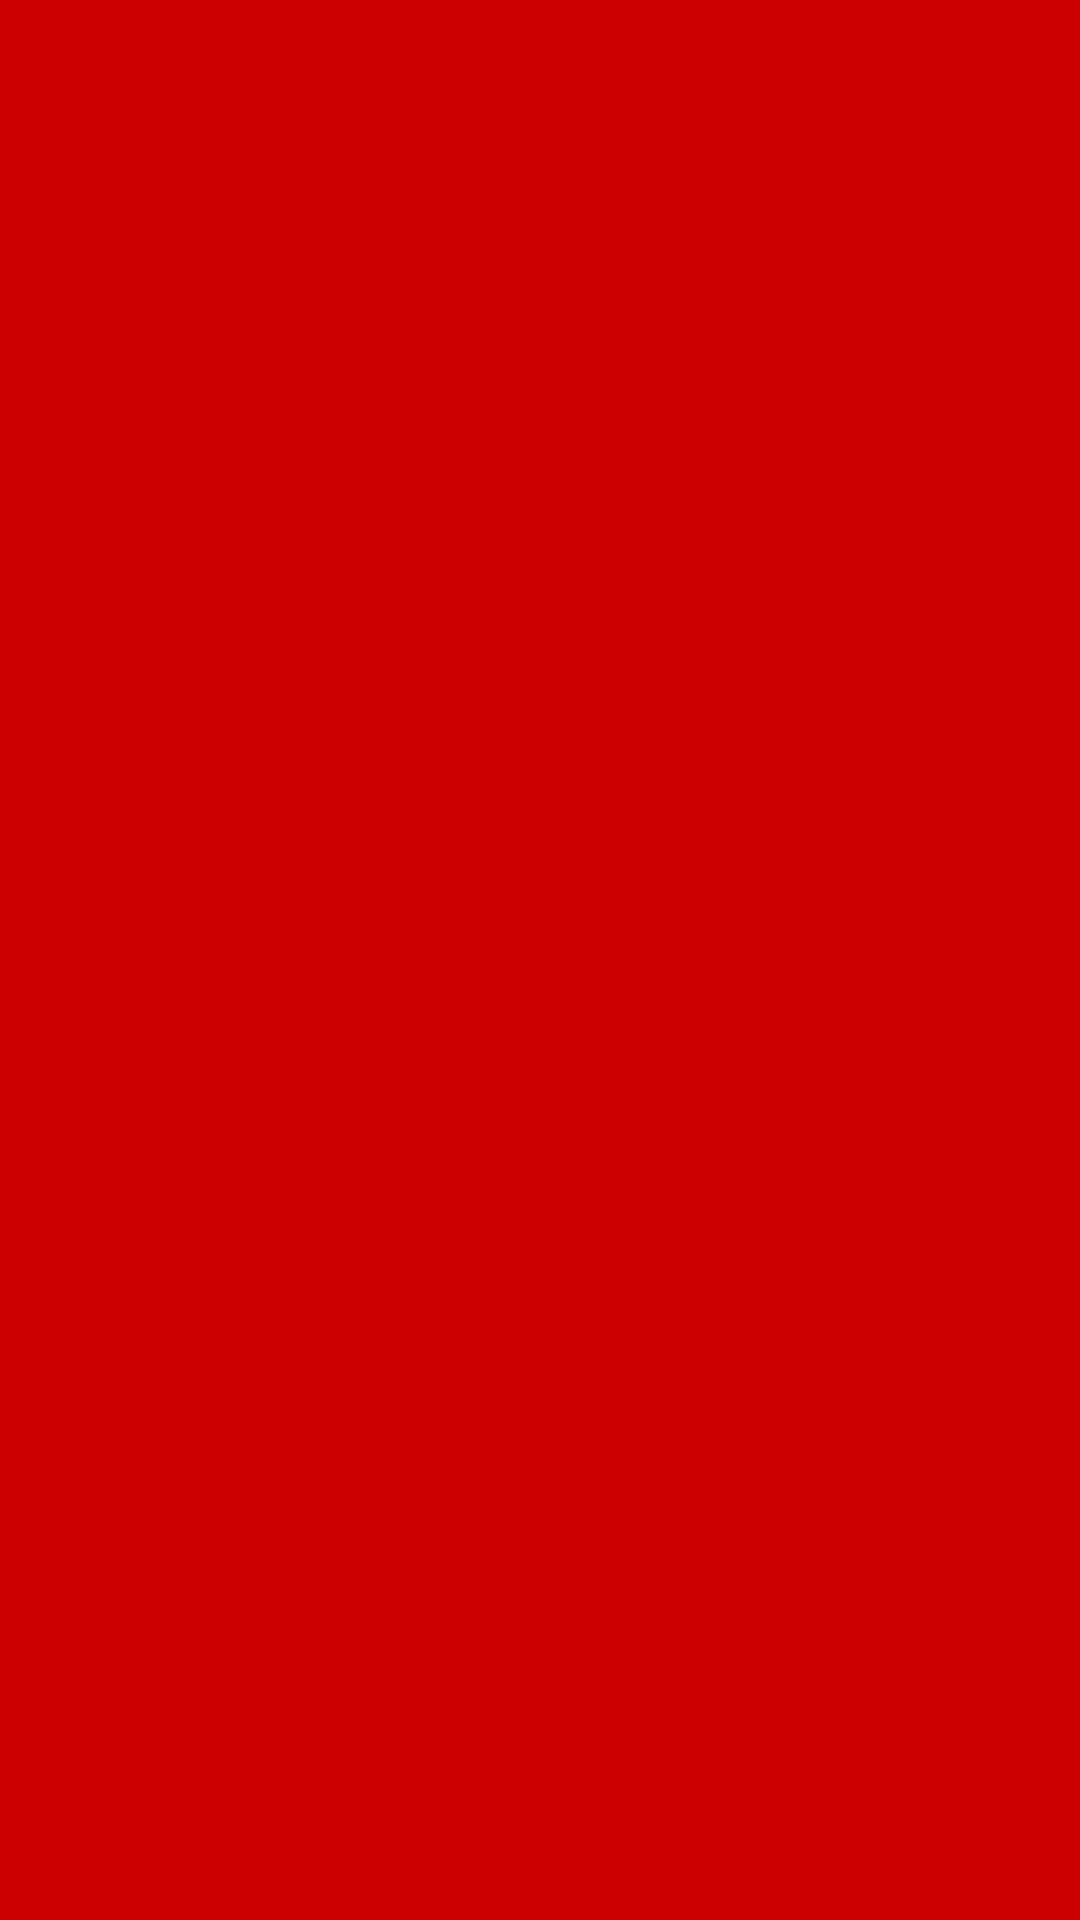 1080x1920 Boston University Red Solid Color Background